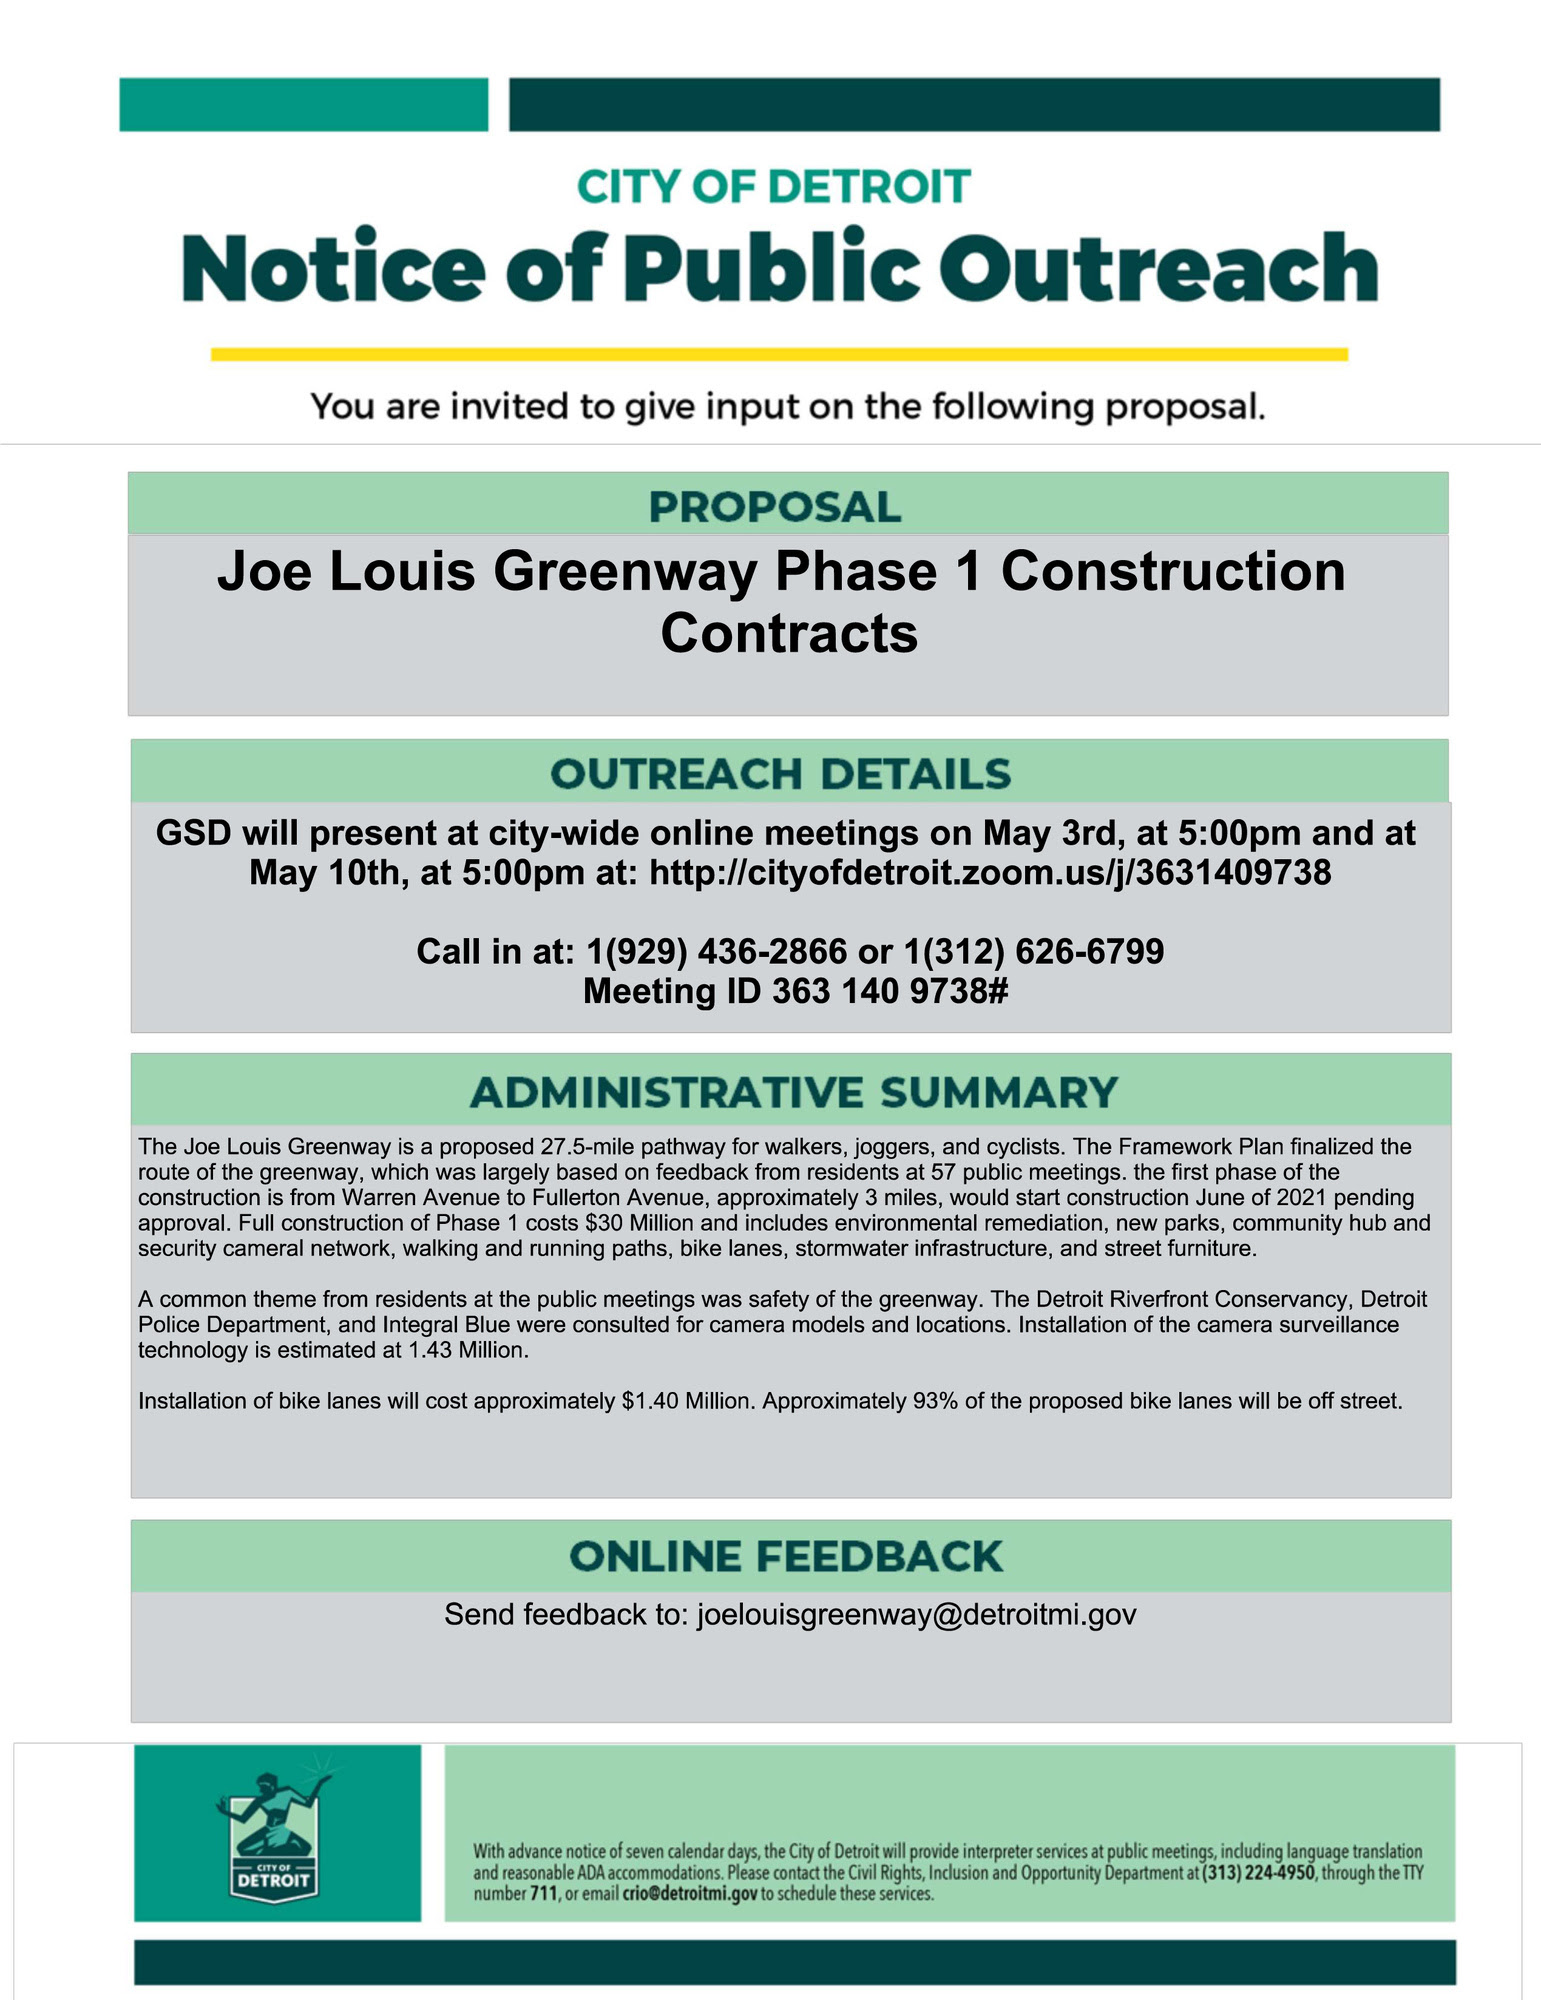 Joe Louis Greenway Contracts Public Meetings 5.3.21 & 5.10.21